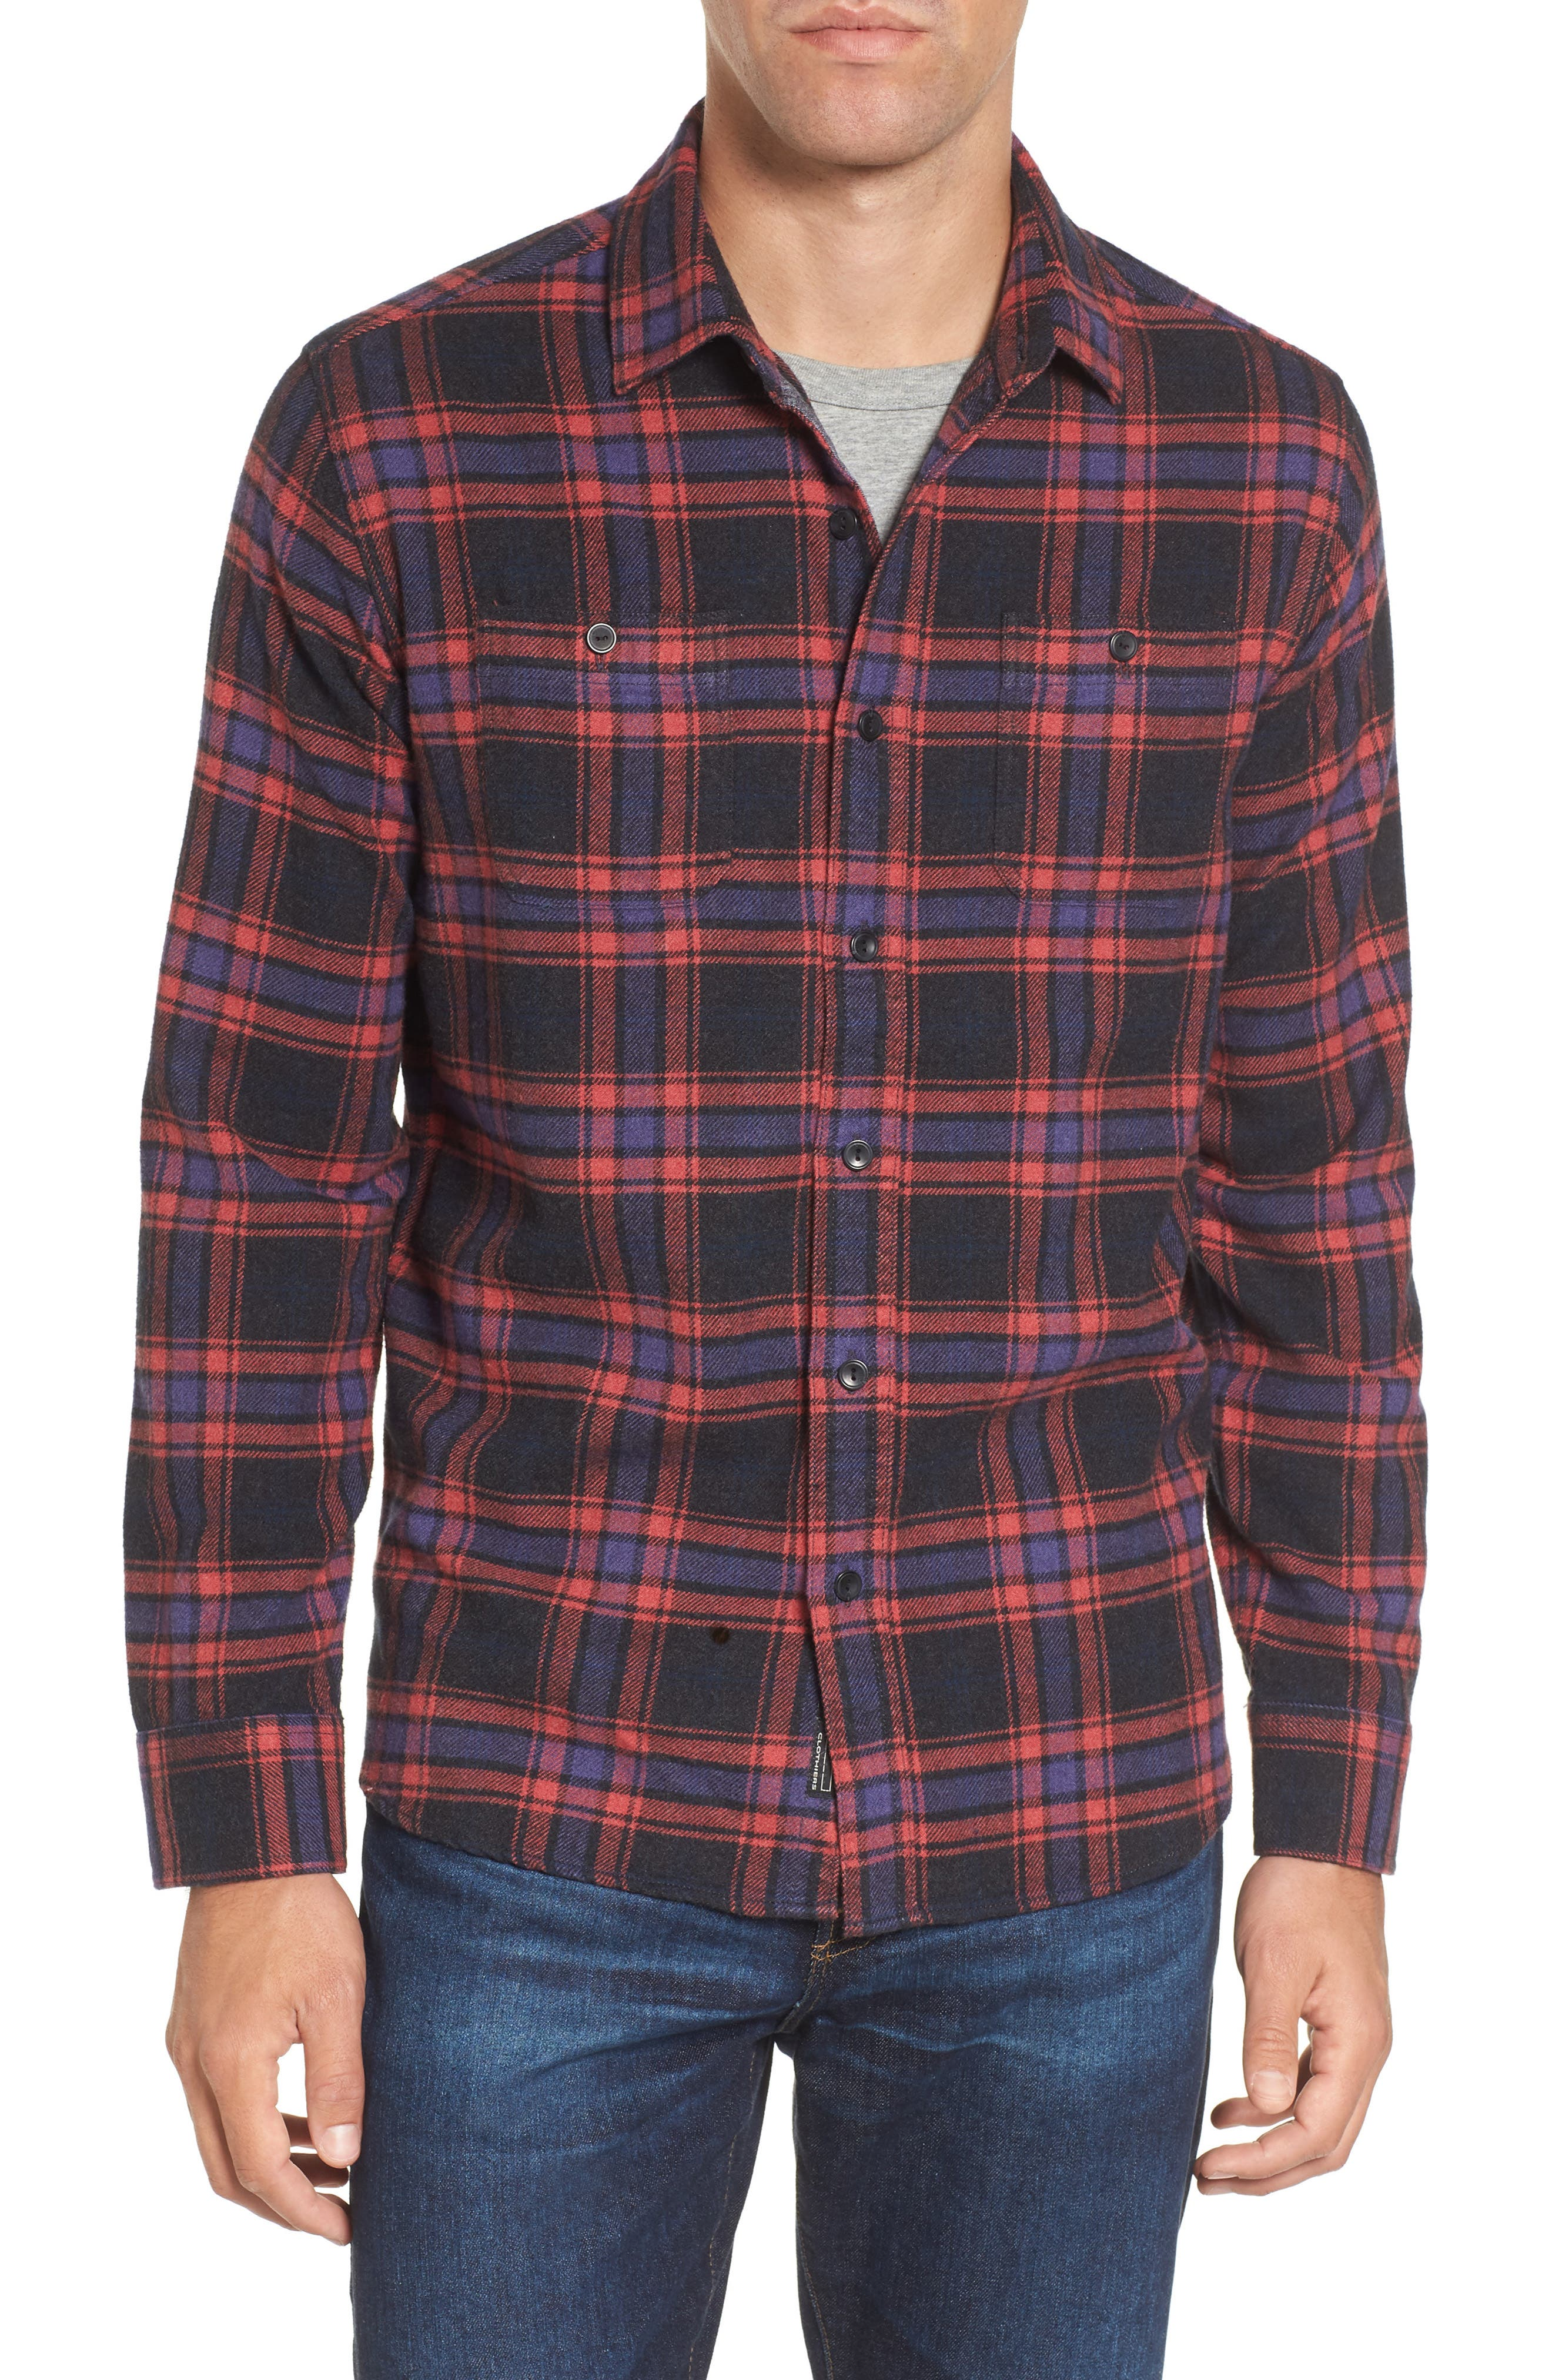 Chaucer Heritage Flannel Shirt,                             Main thumbnail 1, color,                             641